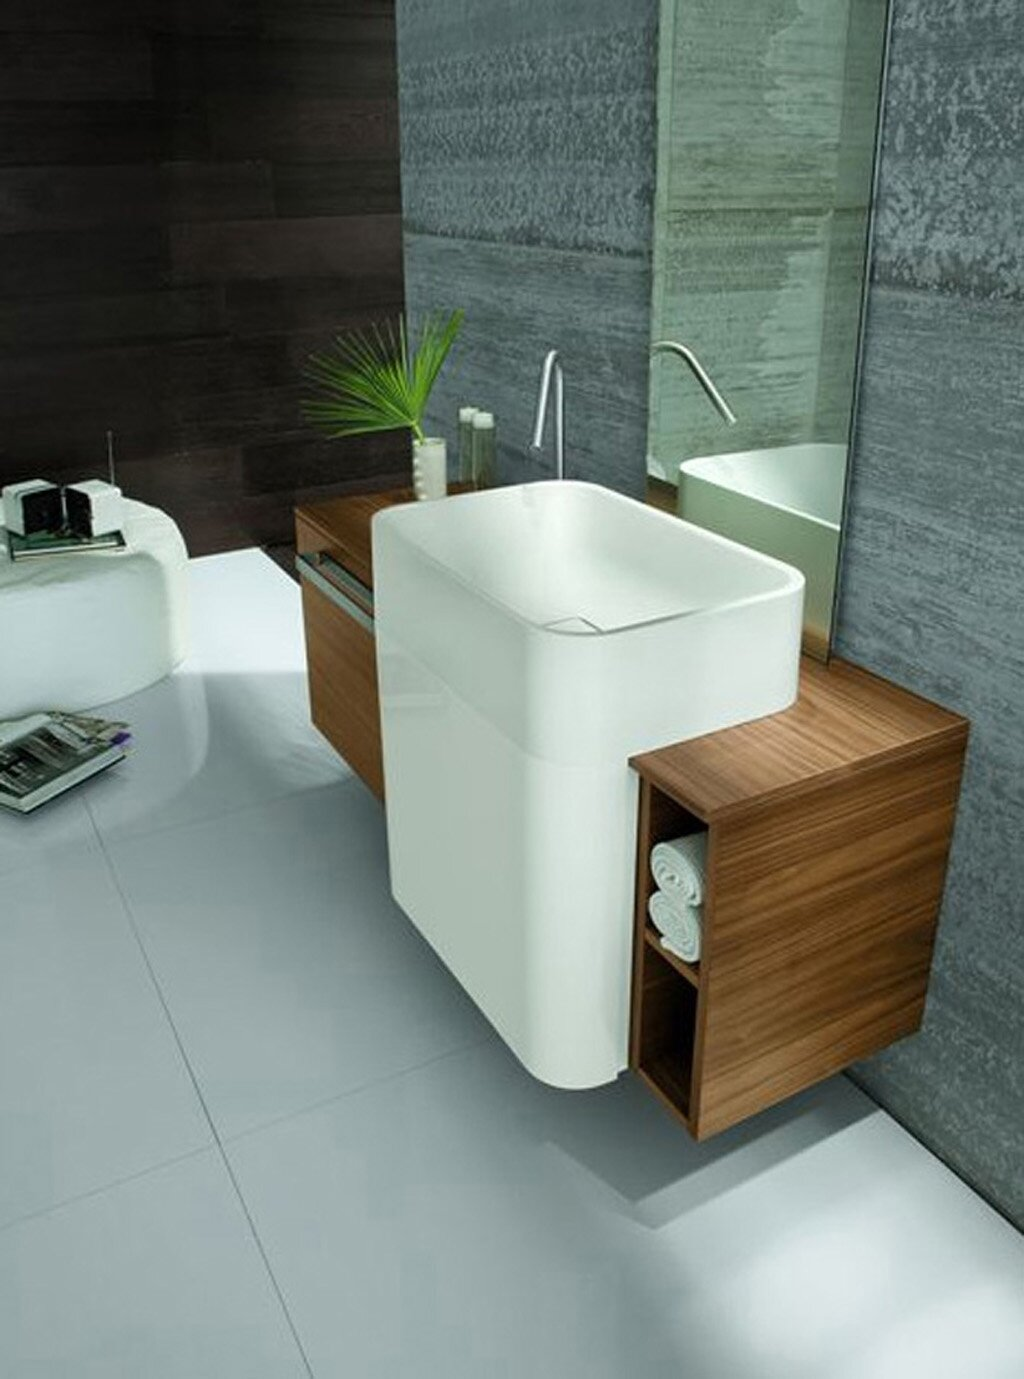 Top 15 bathroom sink designs and models mostbeautifulthings for Bathroom sink ideas pictures